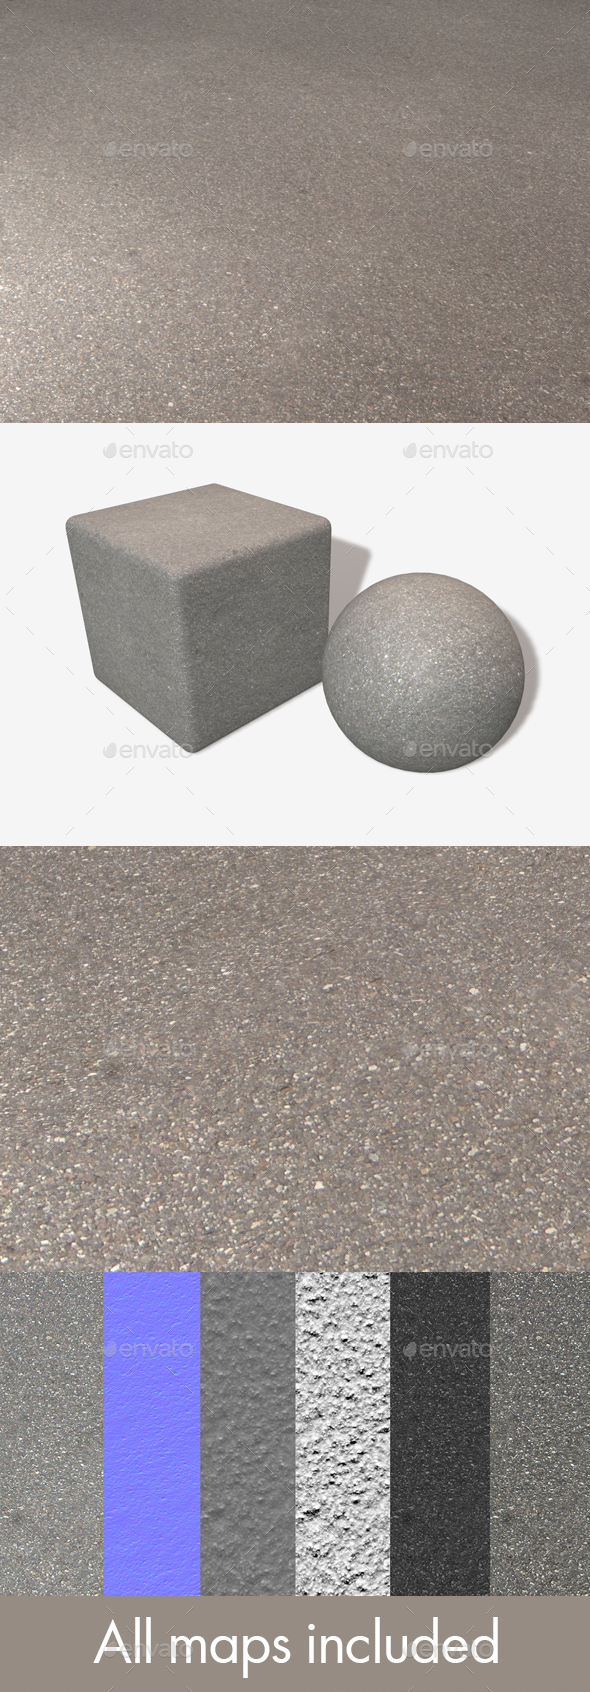 High Angle Asphalt Seamless Texture - 3DOcean Item for Sale